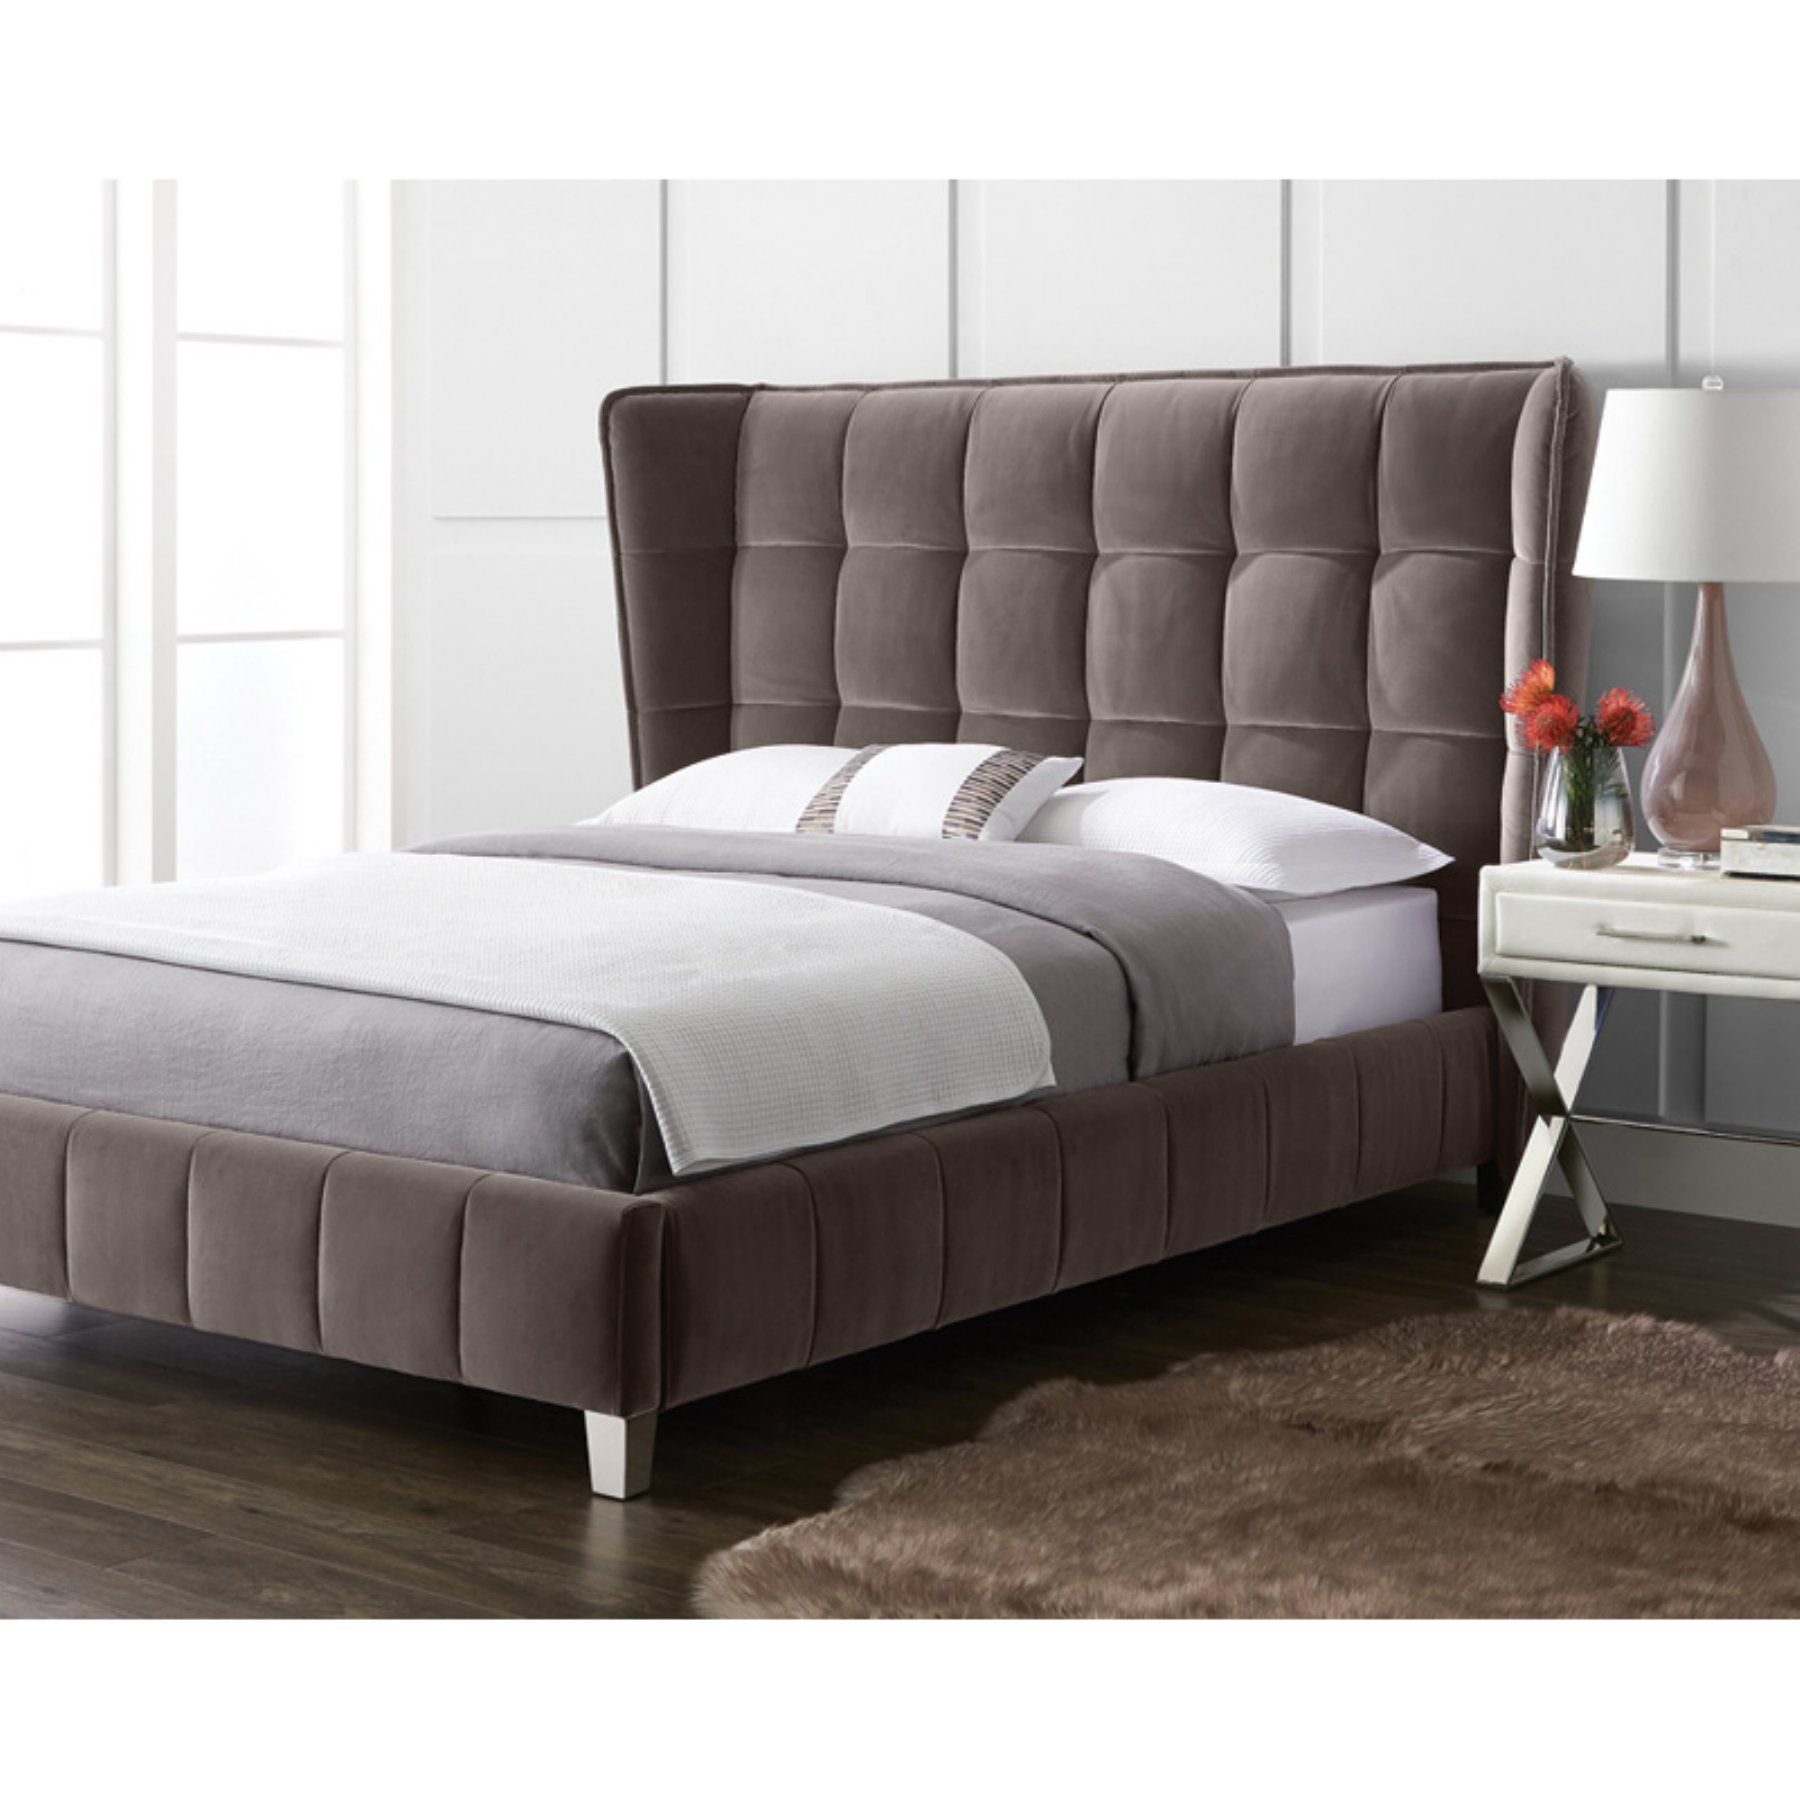 Sunpan Cadam Wingback Platform Bed 100872 Luxury